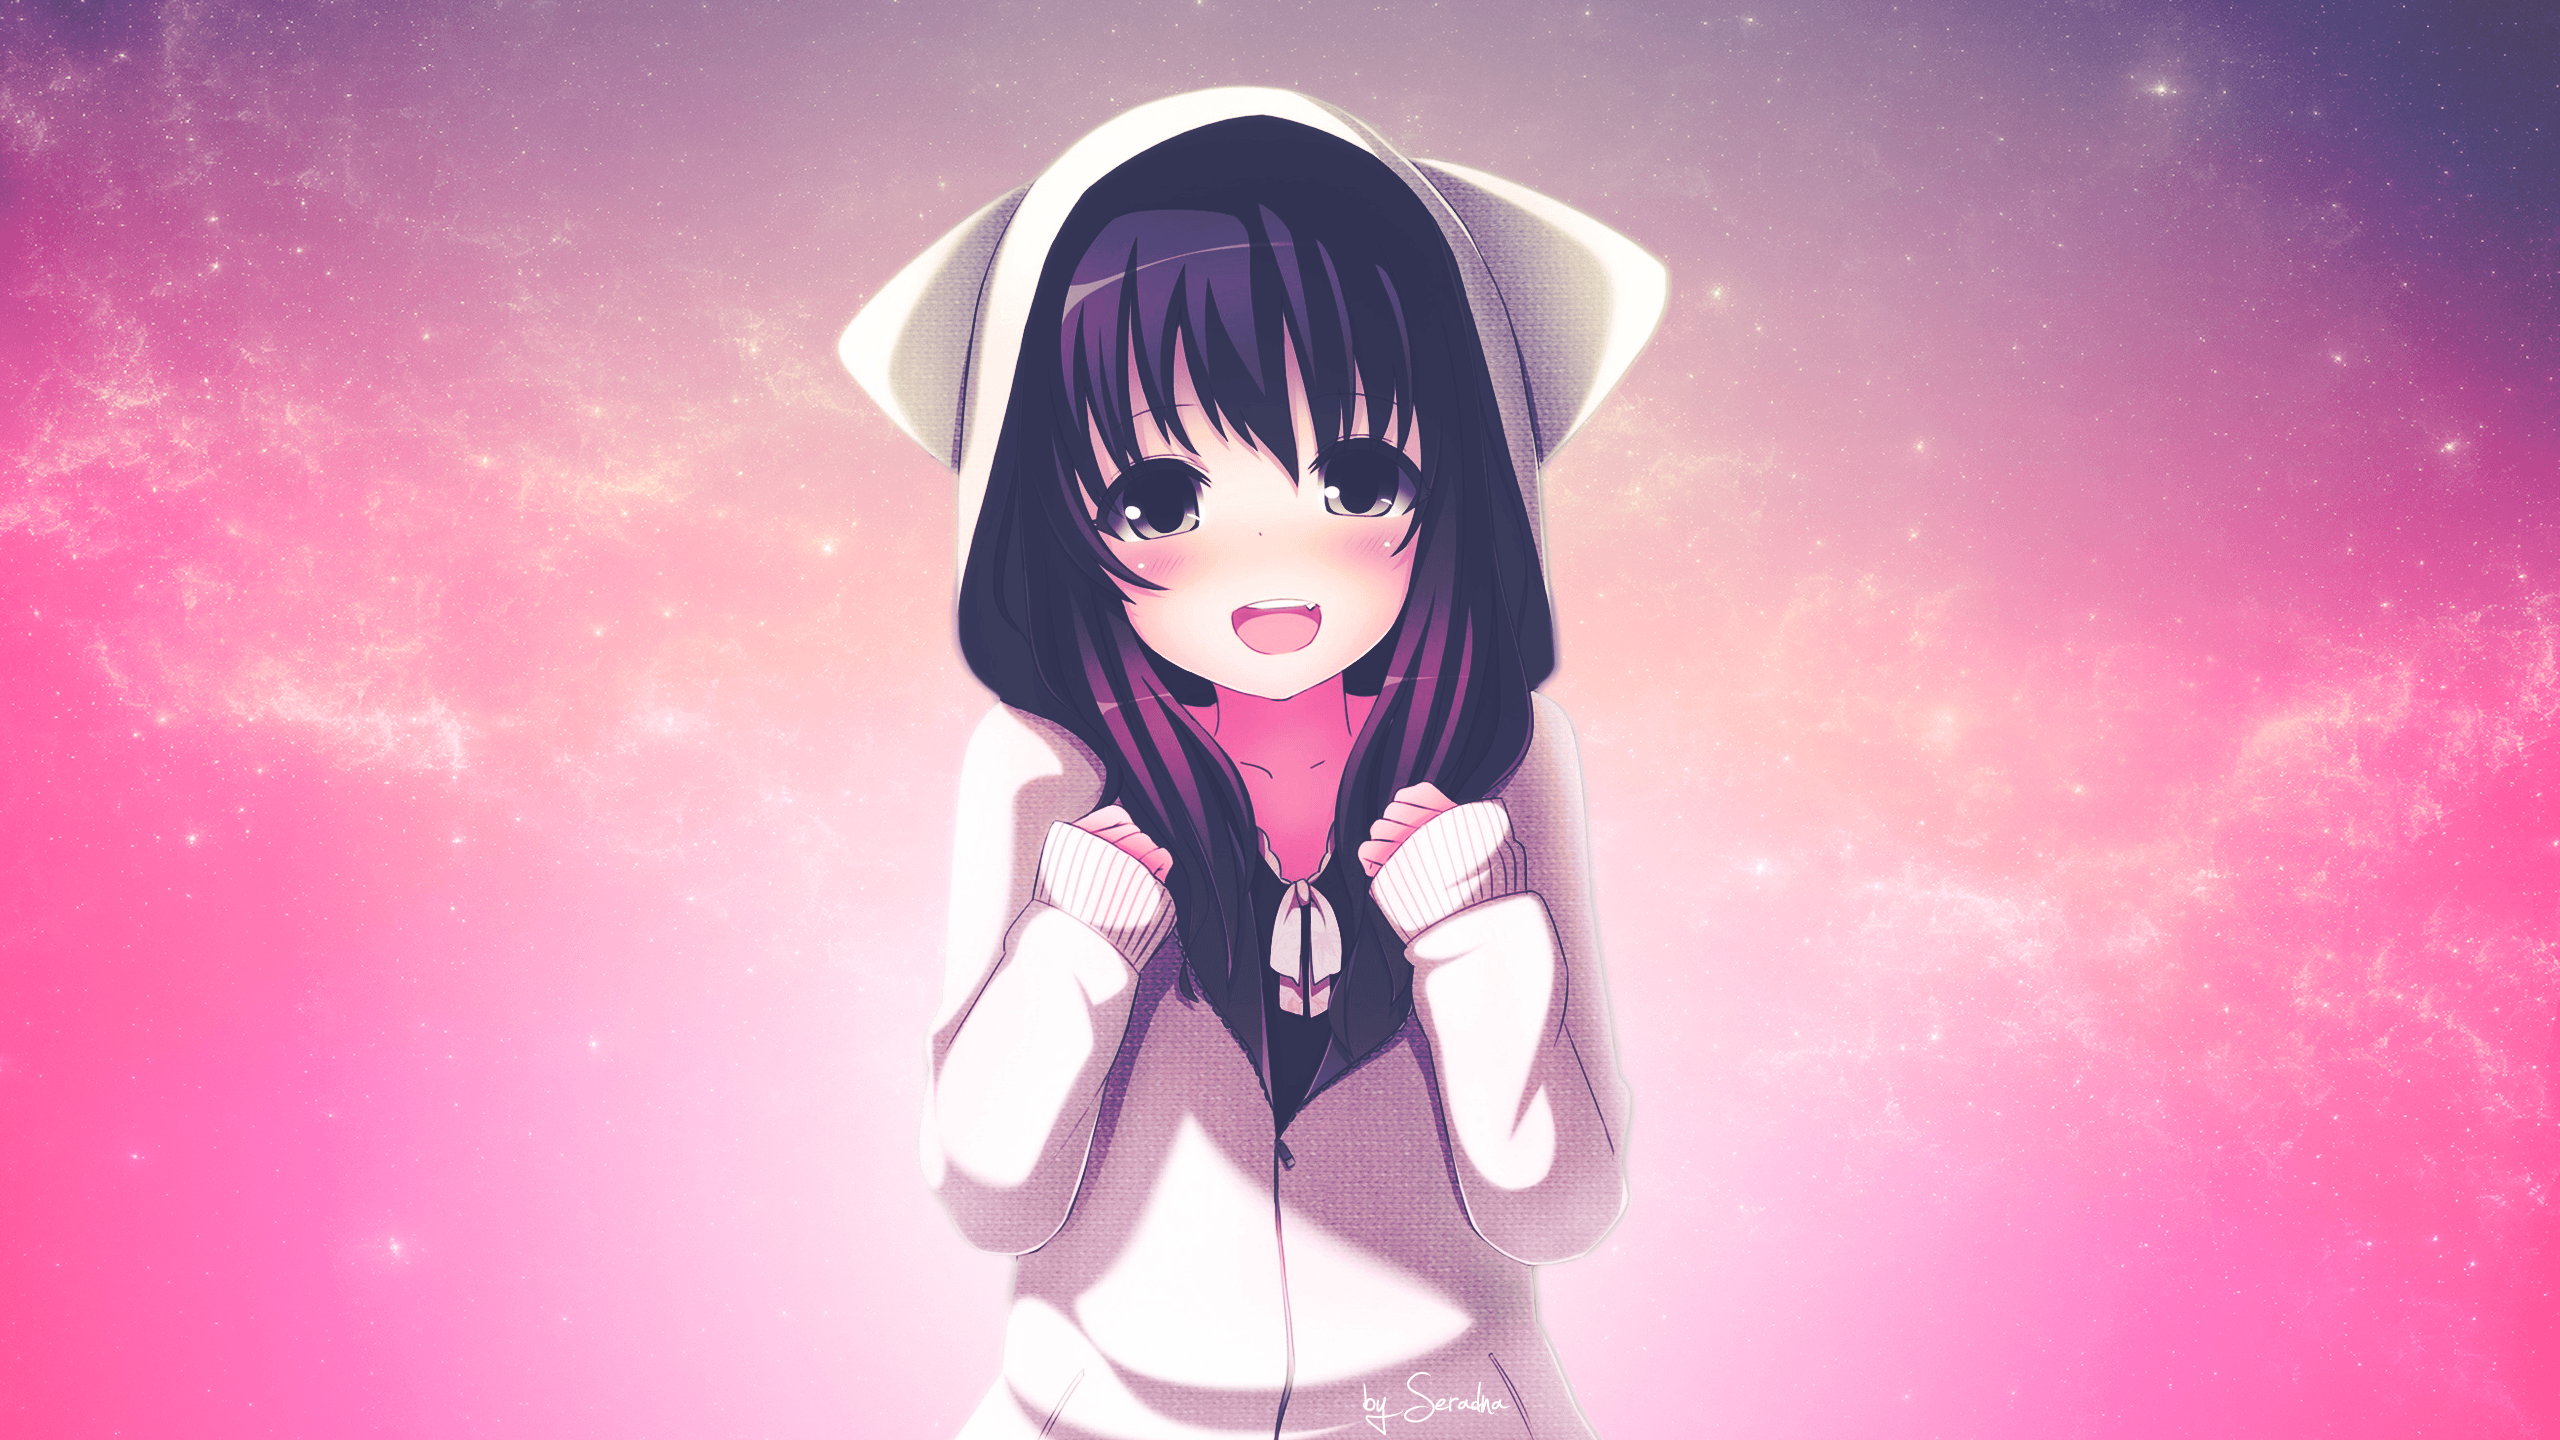 Kawaii Anime Girl Wallpapers - Top Free Kawaii Anime Girl